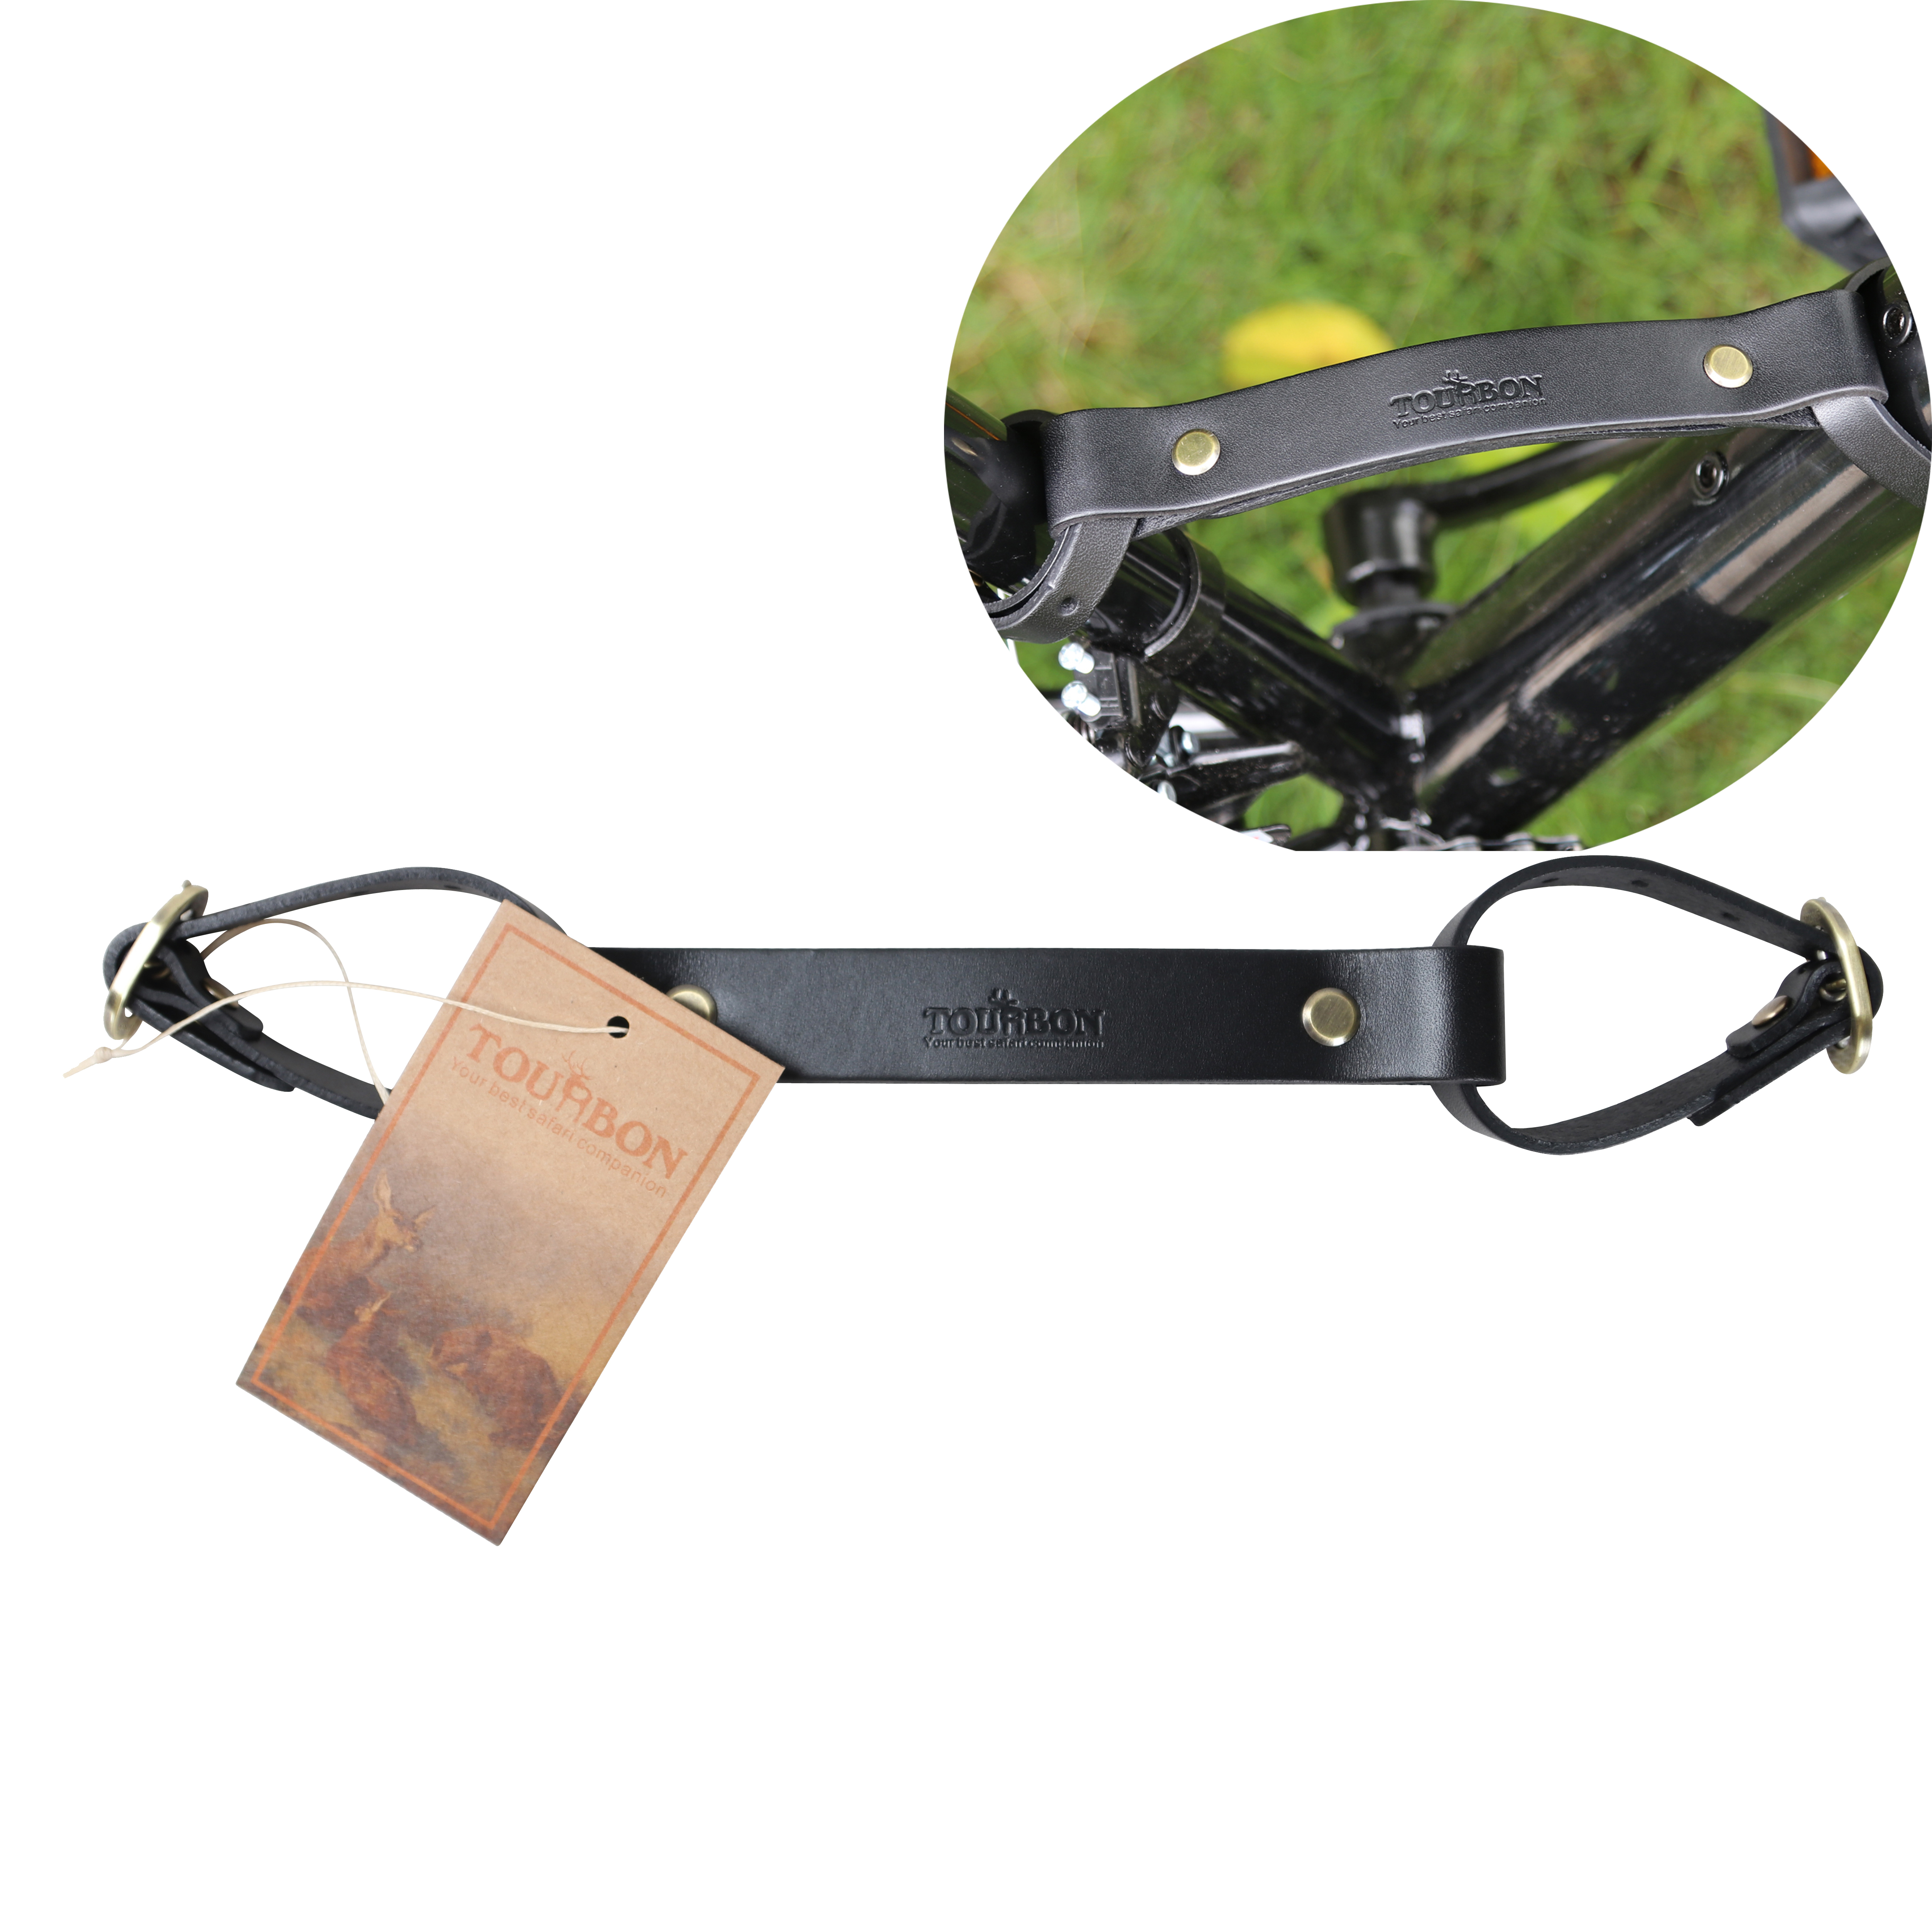 Tourbon Frame Carrying Strap Handle Bike Move Tube Hold Lifter Portaging Cycling